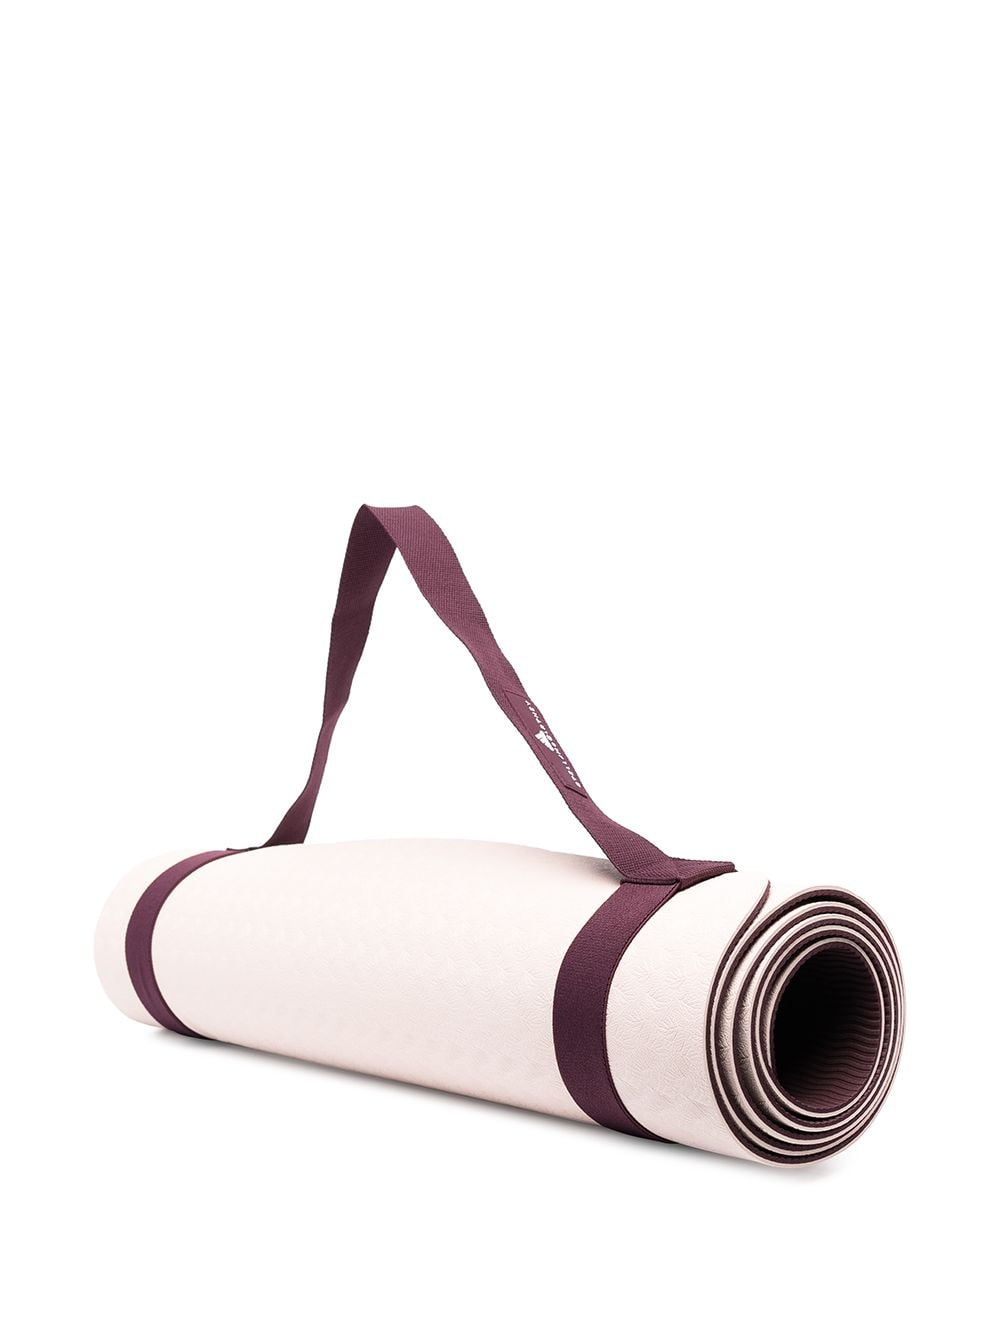 Adidas by Stella McCartney two-tone yoga mat